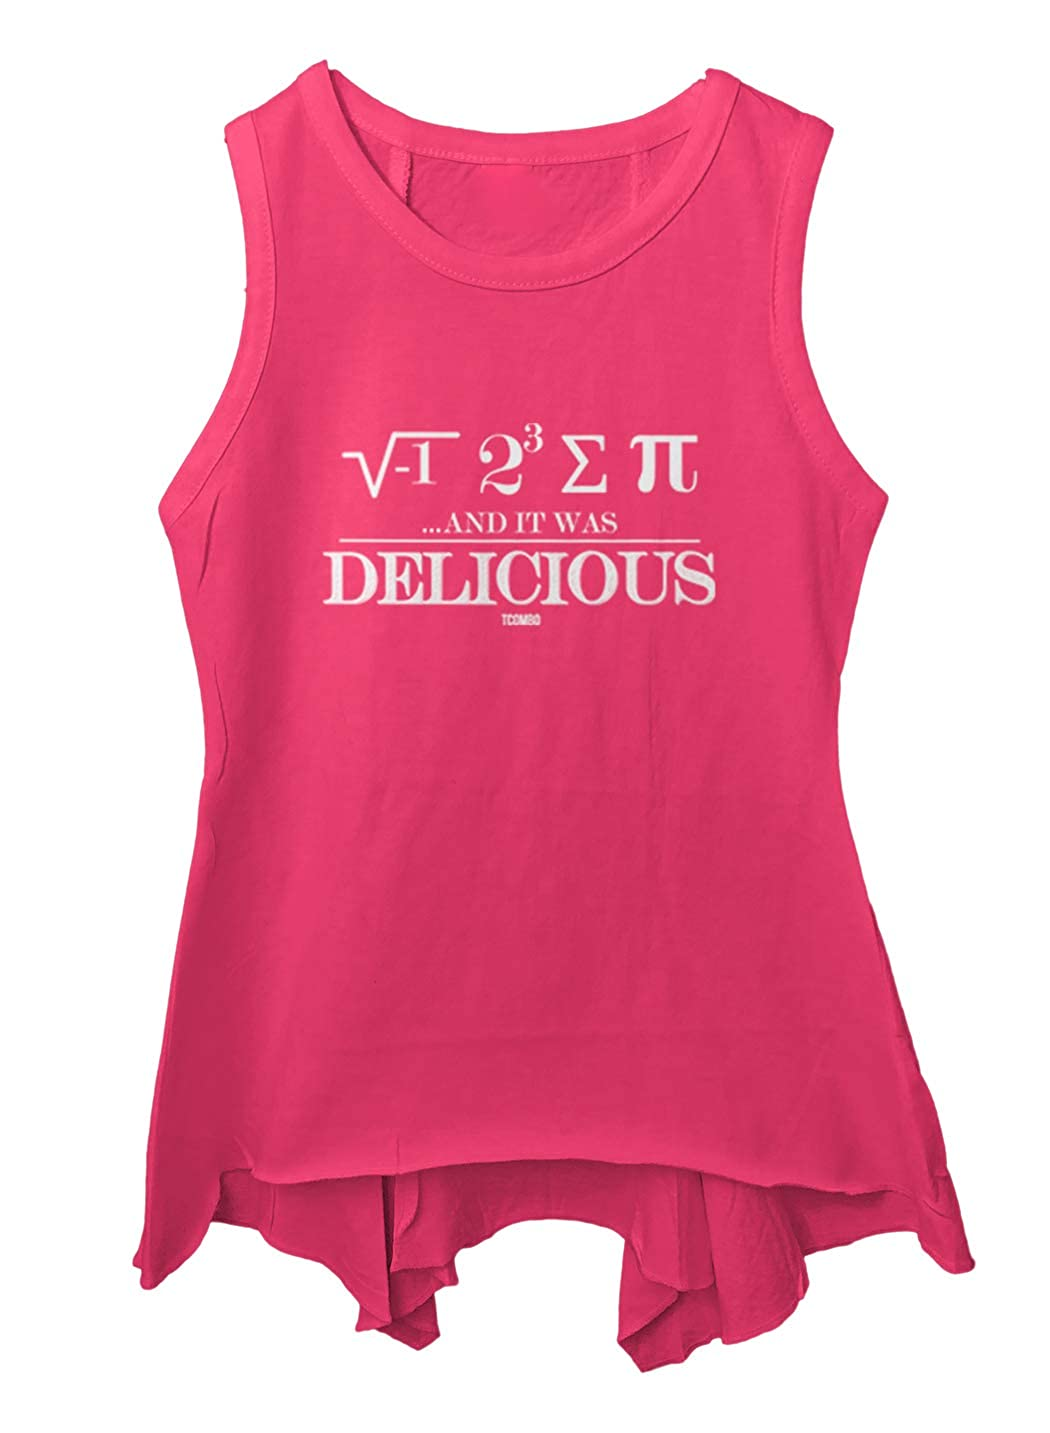 I Ate Some Pie and It was Delicious Toddler//Youth Sleeveless Backswing